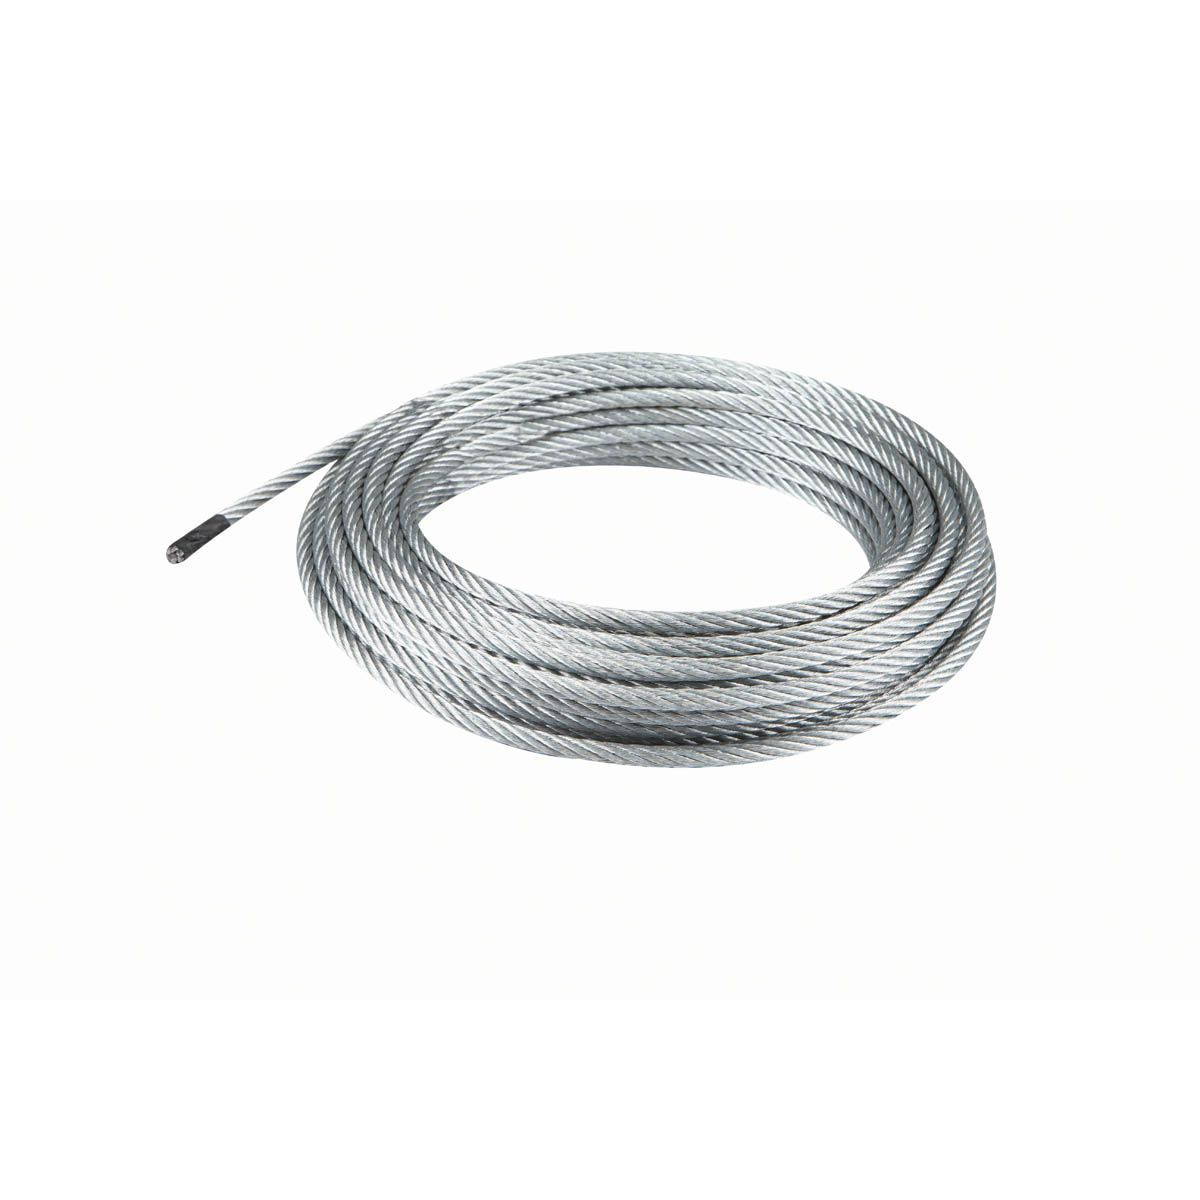 50 Ft X 1 4 In Aircraft Grade Wire Rope In 2020 Rope Wire Galvanized